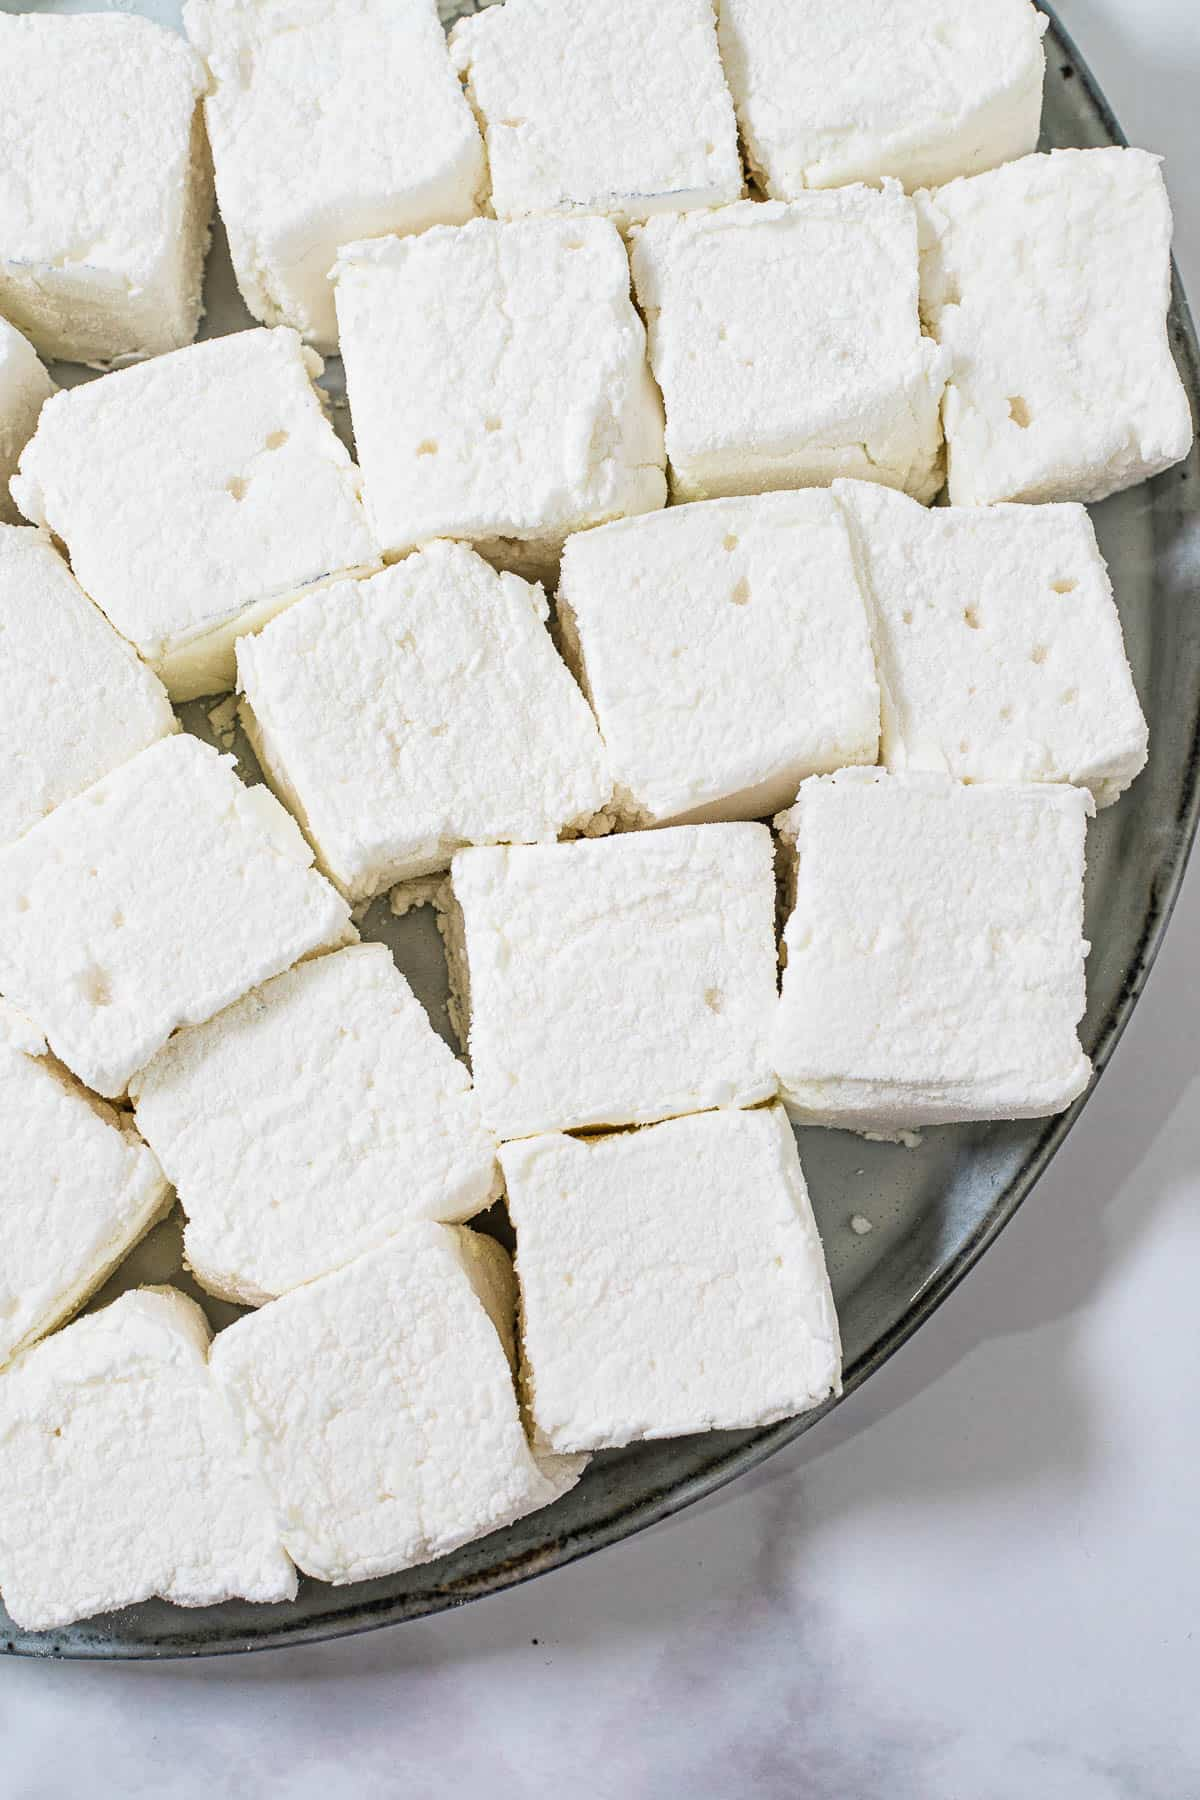 A plate of square blocks of white marshmallows